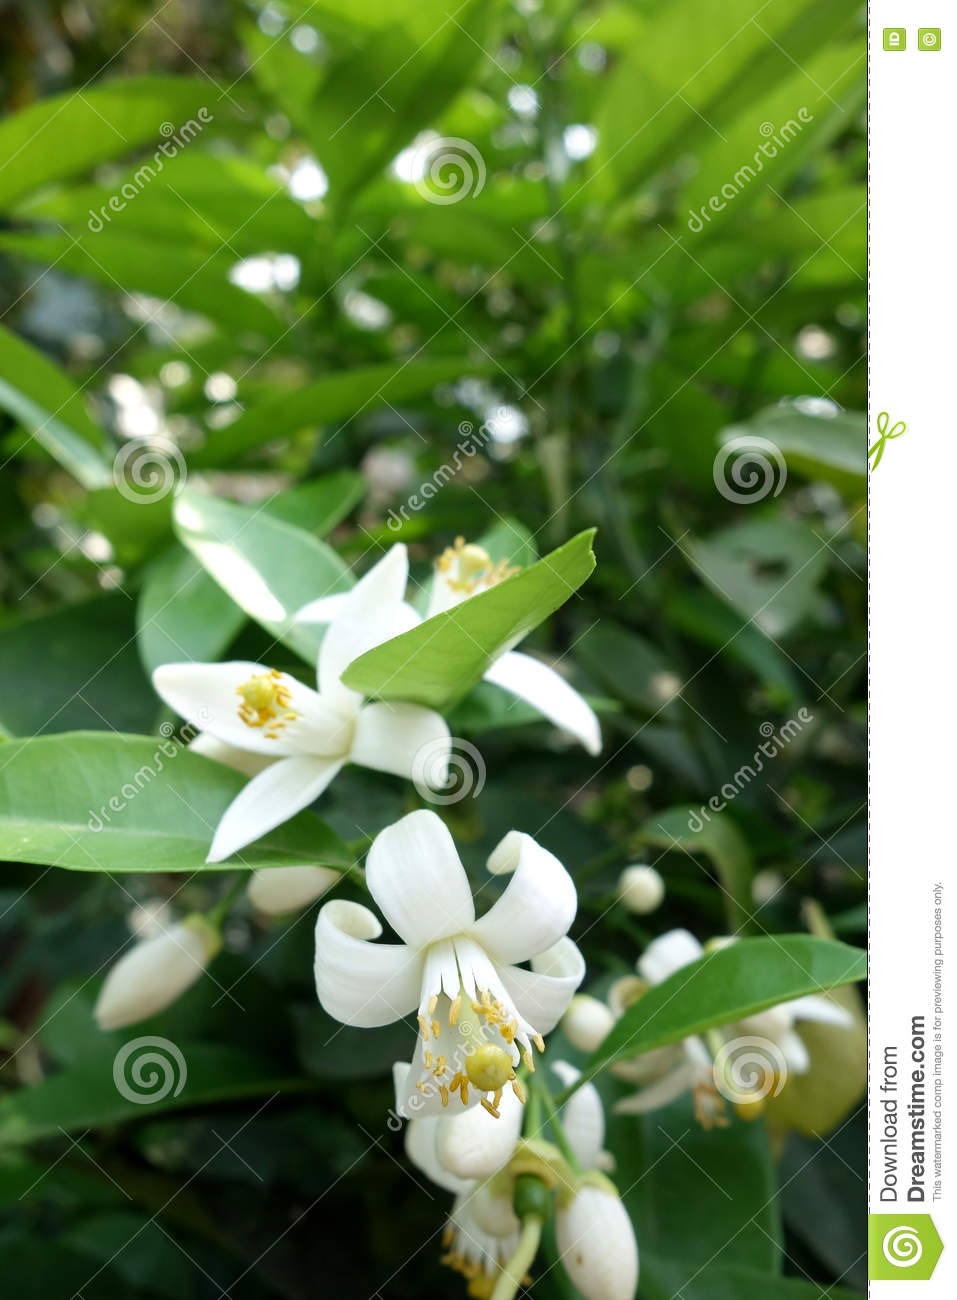 Indian jasmine flower stock photo image of fragrant 70792984 indian jasmine flower izmirmasajfo